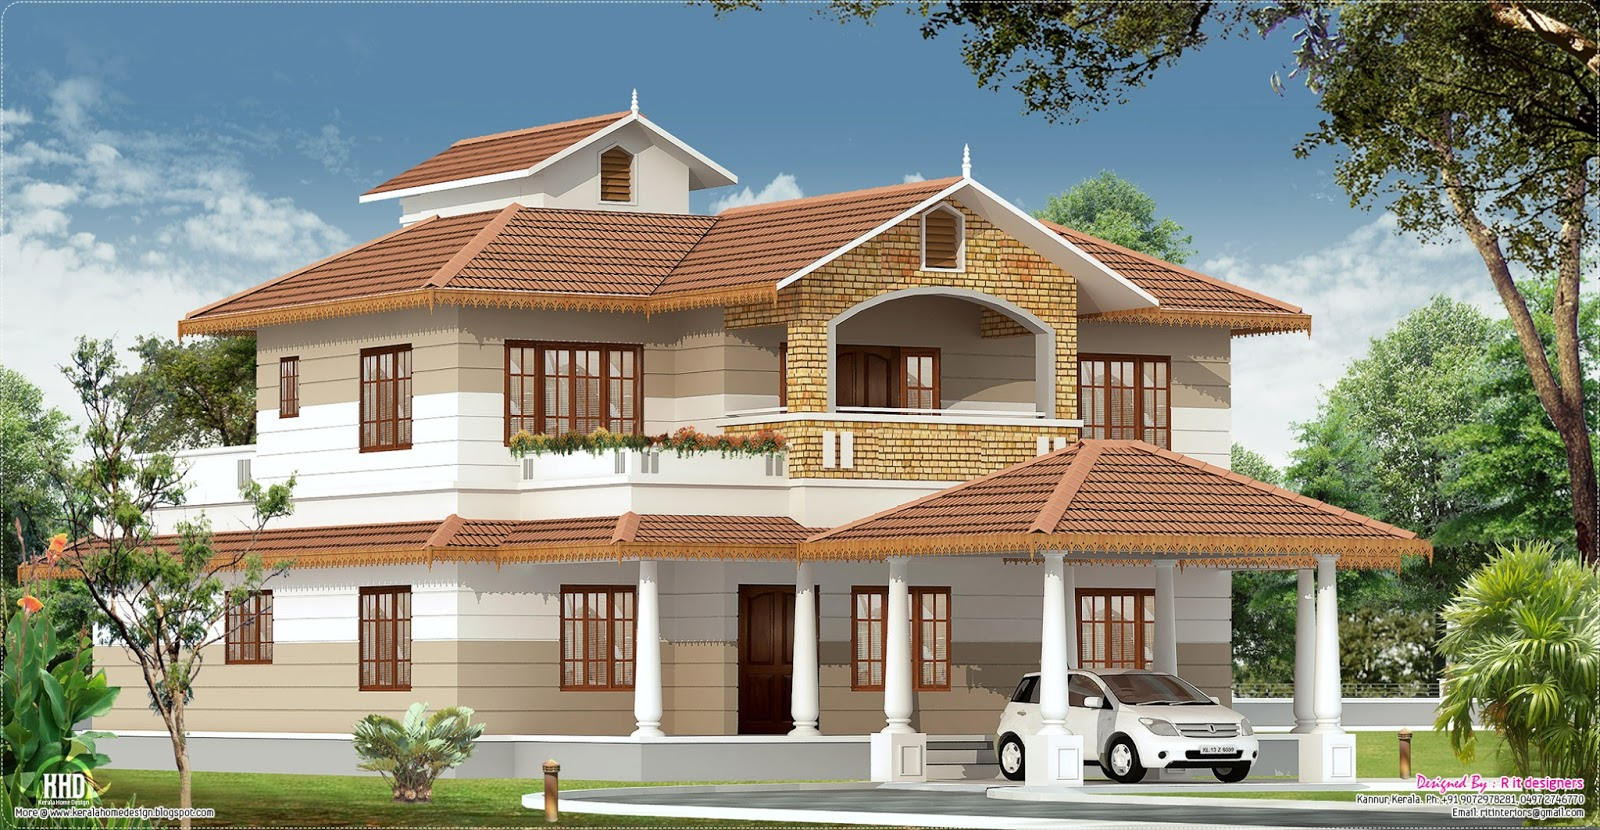 2700 kerala home with interior designs kerala for House and design